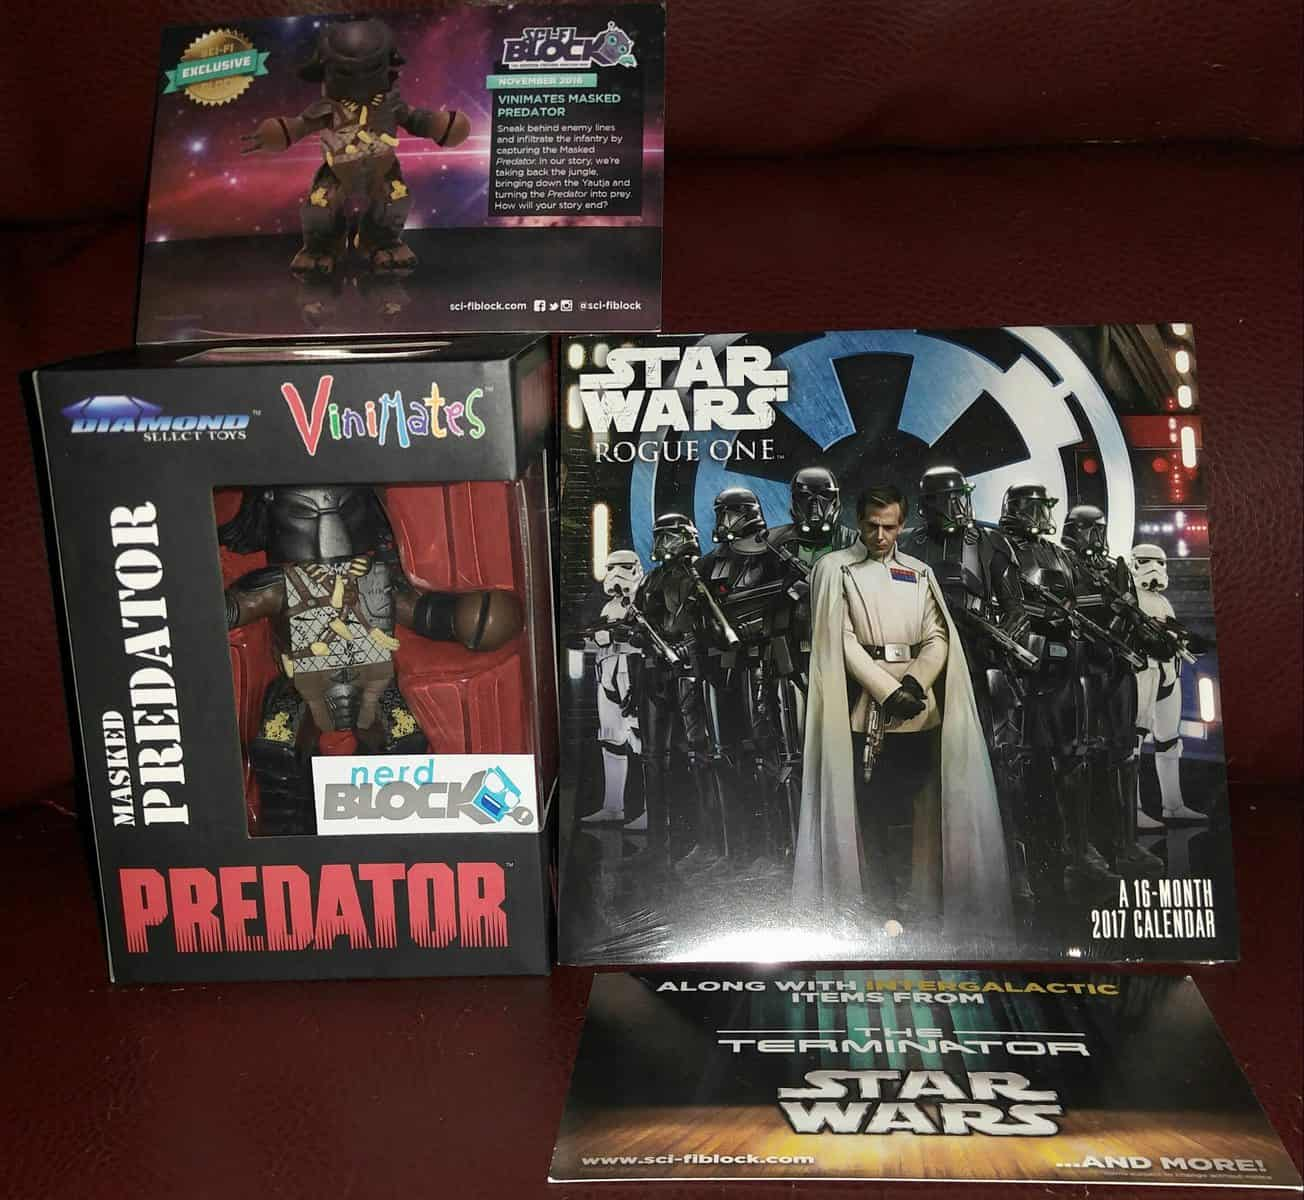 November 2016 Sci-Fi Block Review - Predator & Star Wars Calendar